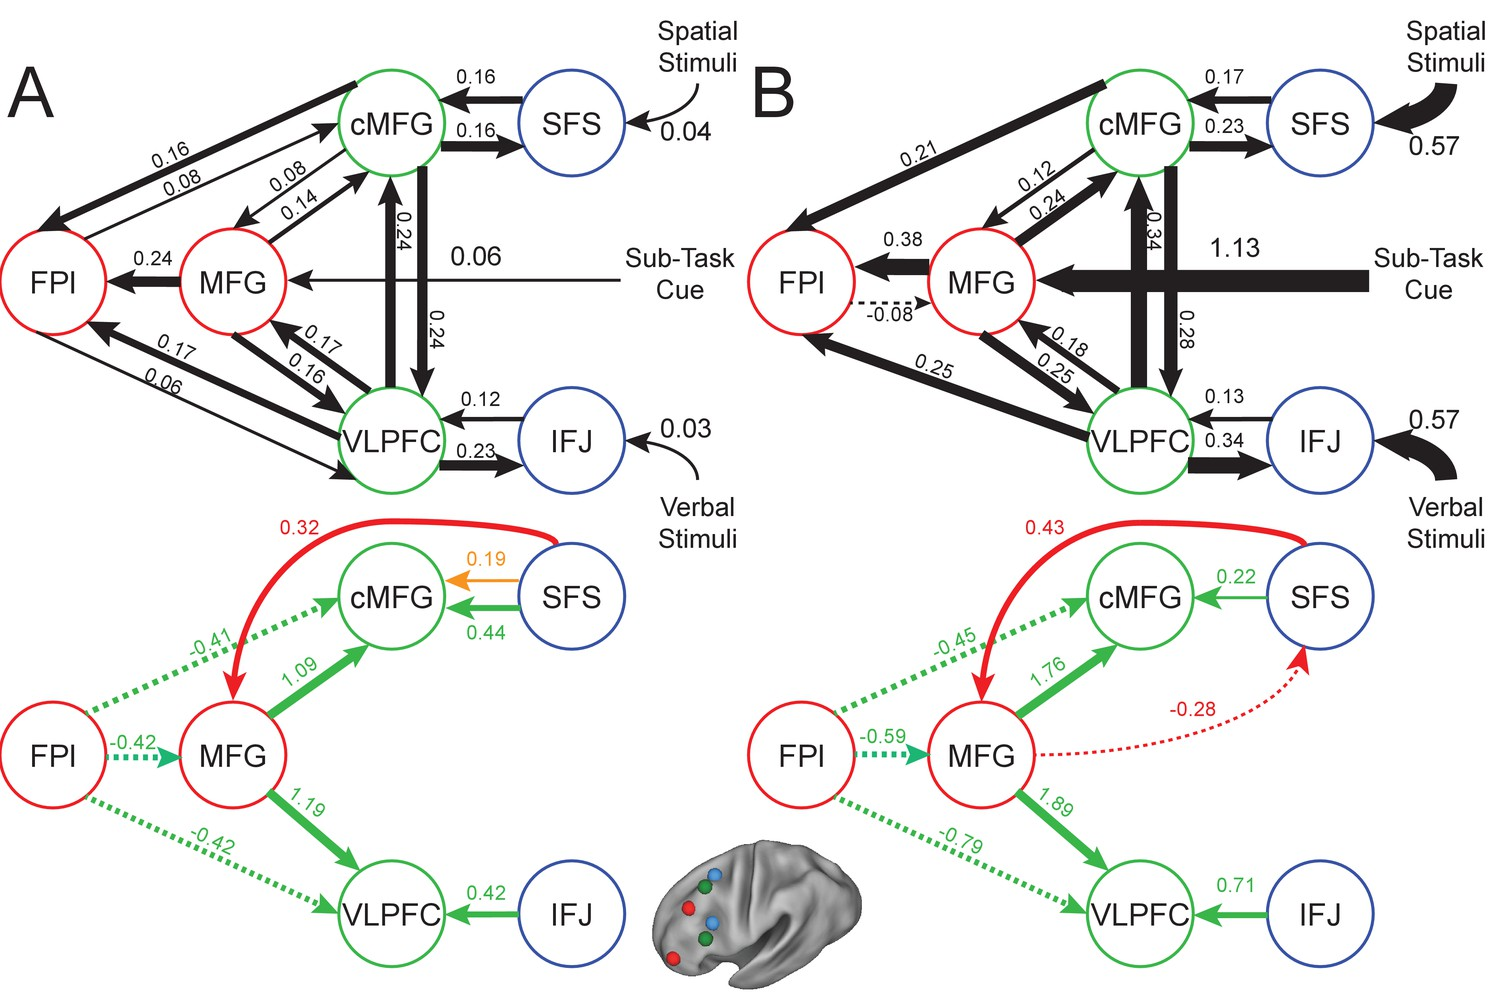 Causal Evidence For Lateral Prefrontal Cortex Dynamics Supporting